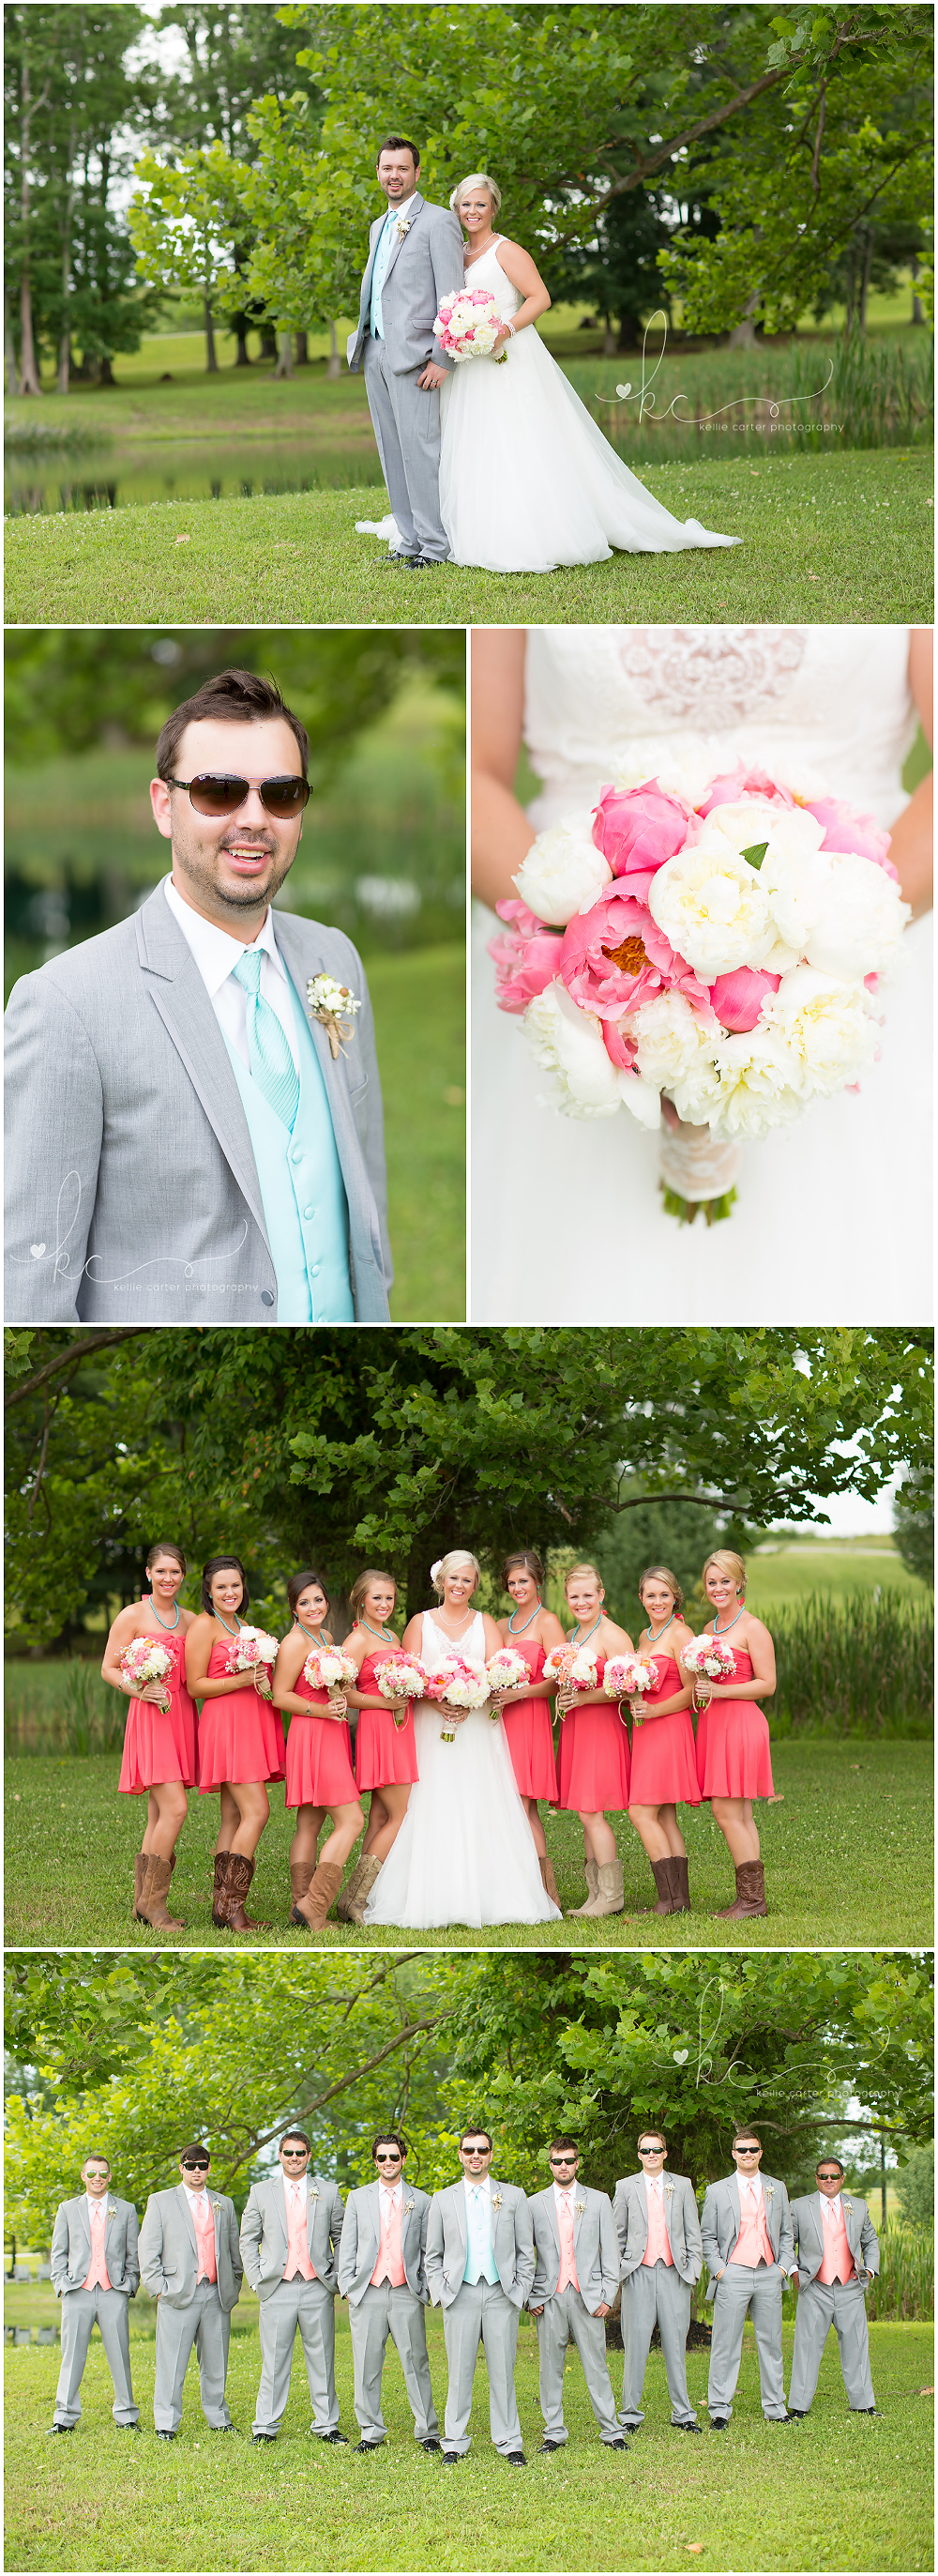 KellieCarterPhotography23 Ashley & Matt are Married {Somerset, KY Wedding Photographer}